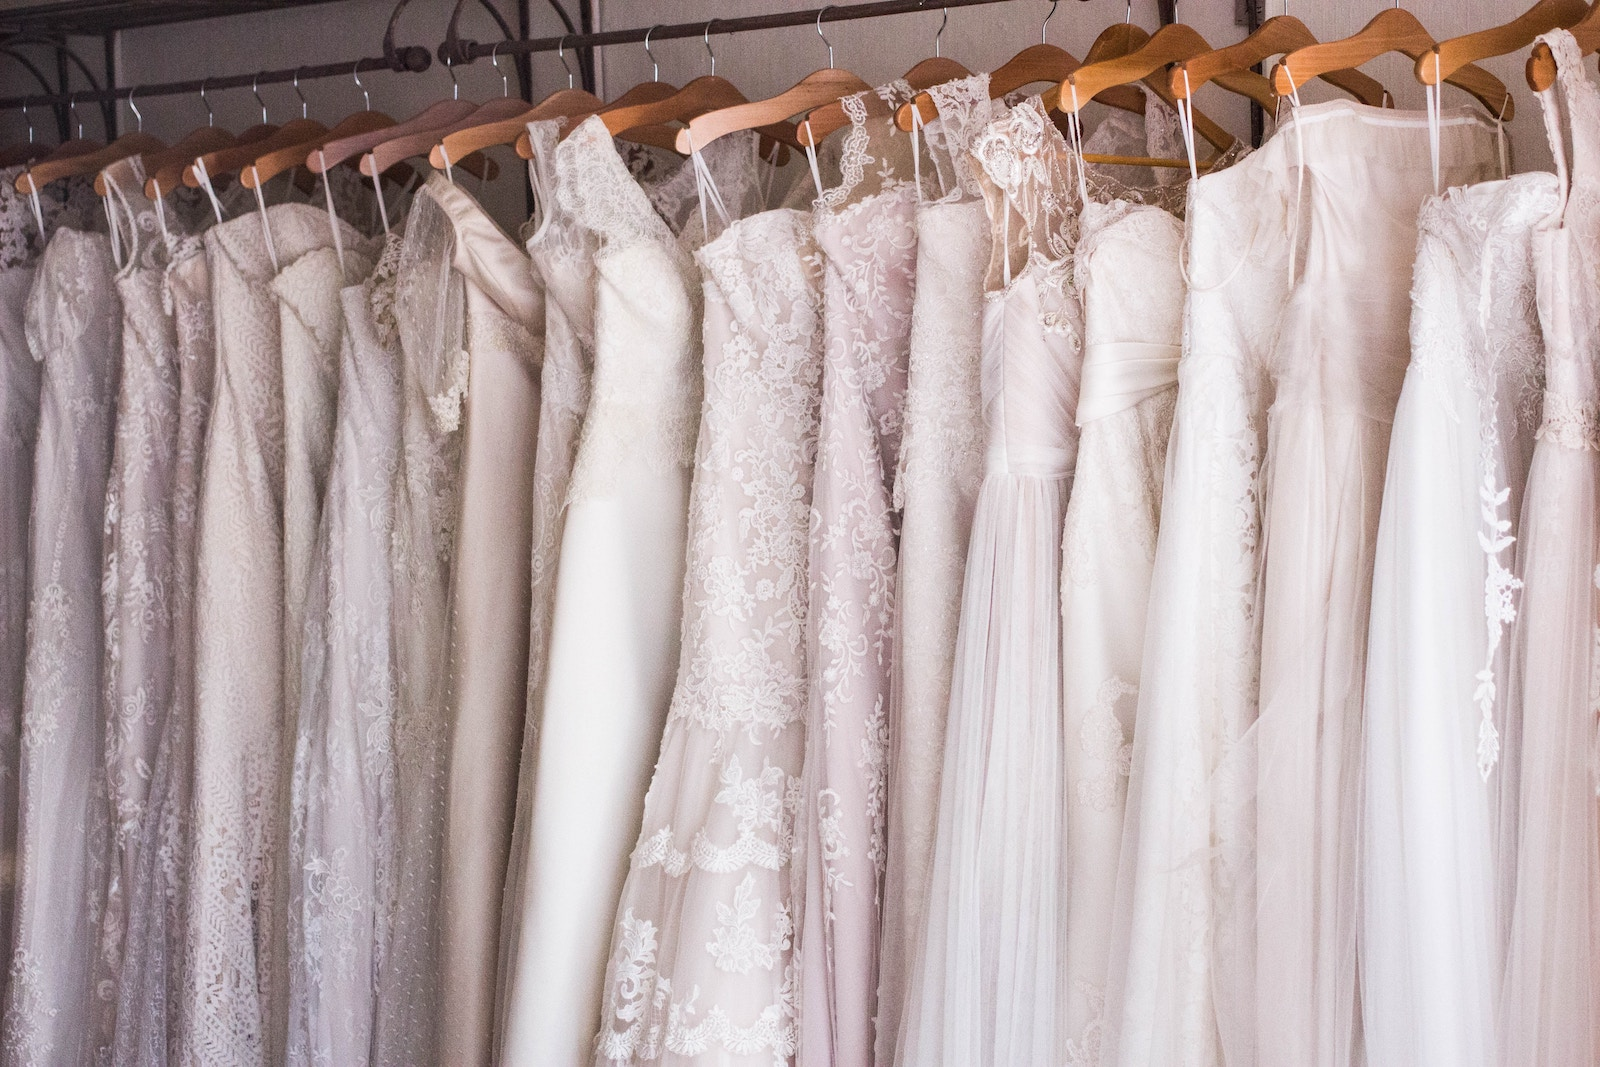 The Ultimate Guide To Cleaning And Storing A Wedding Dress